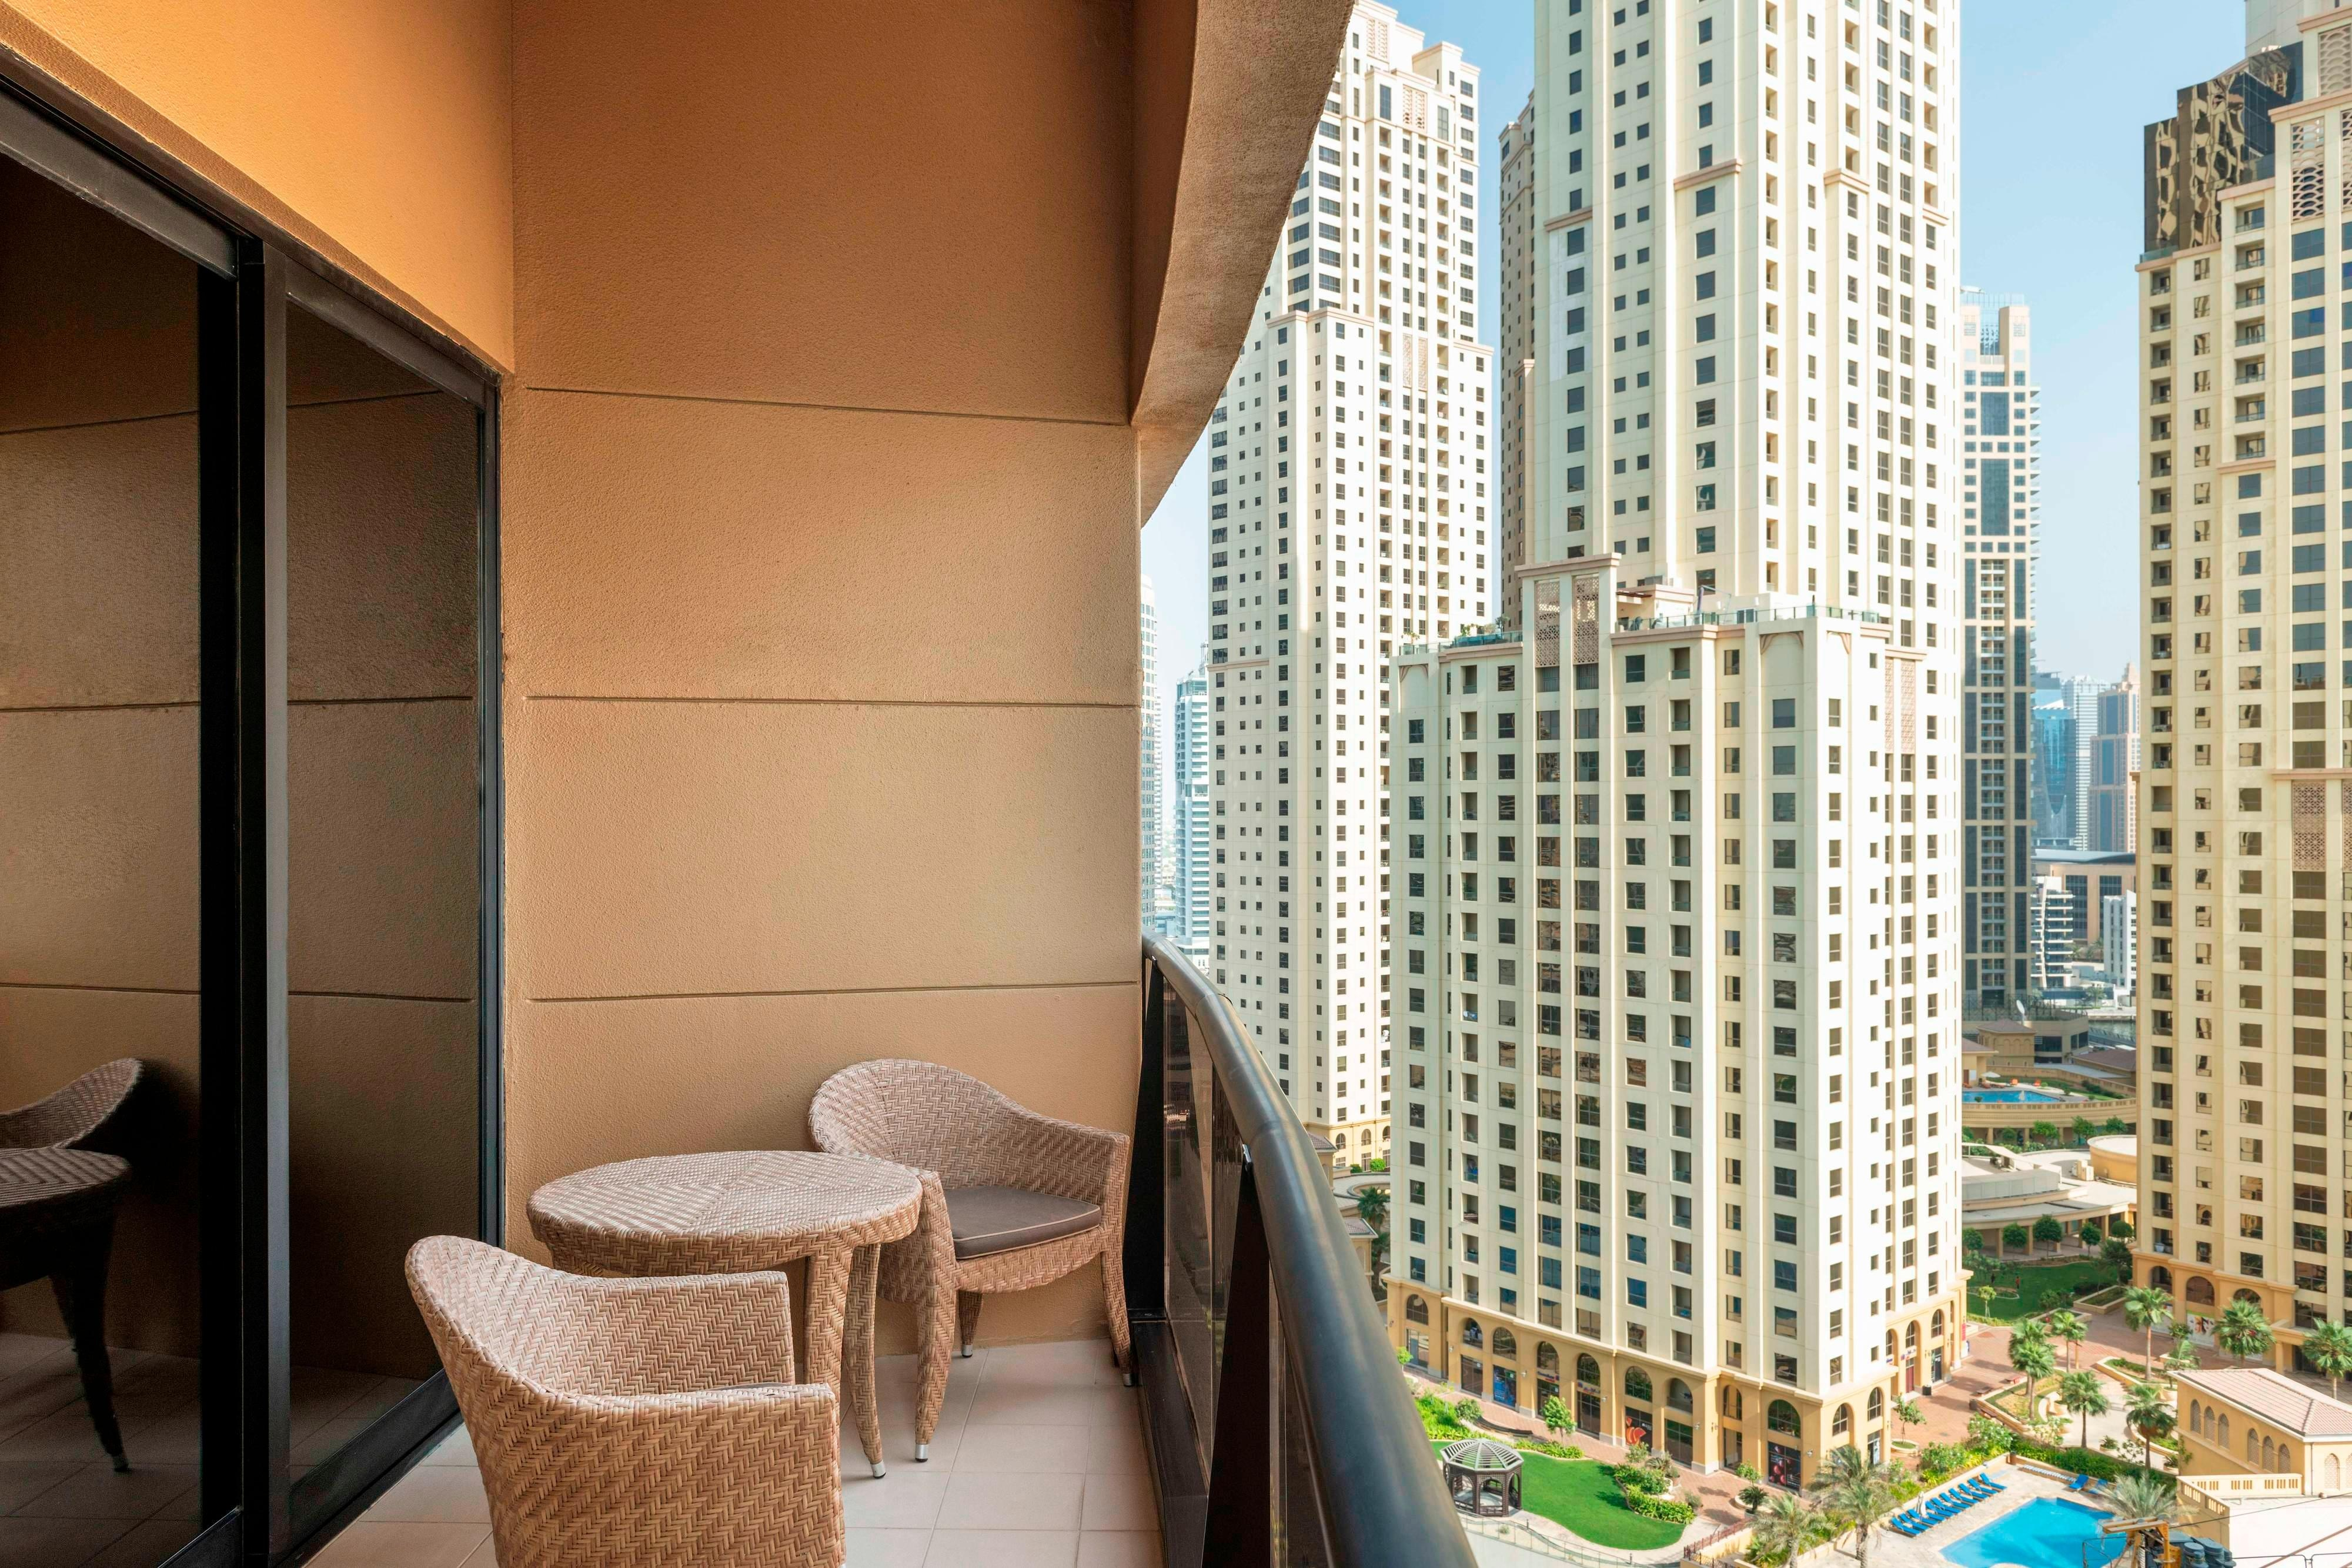 JBR View Royal Club Guest room Balcony